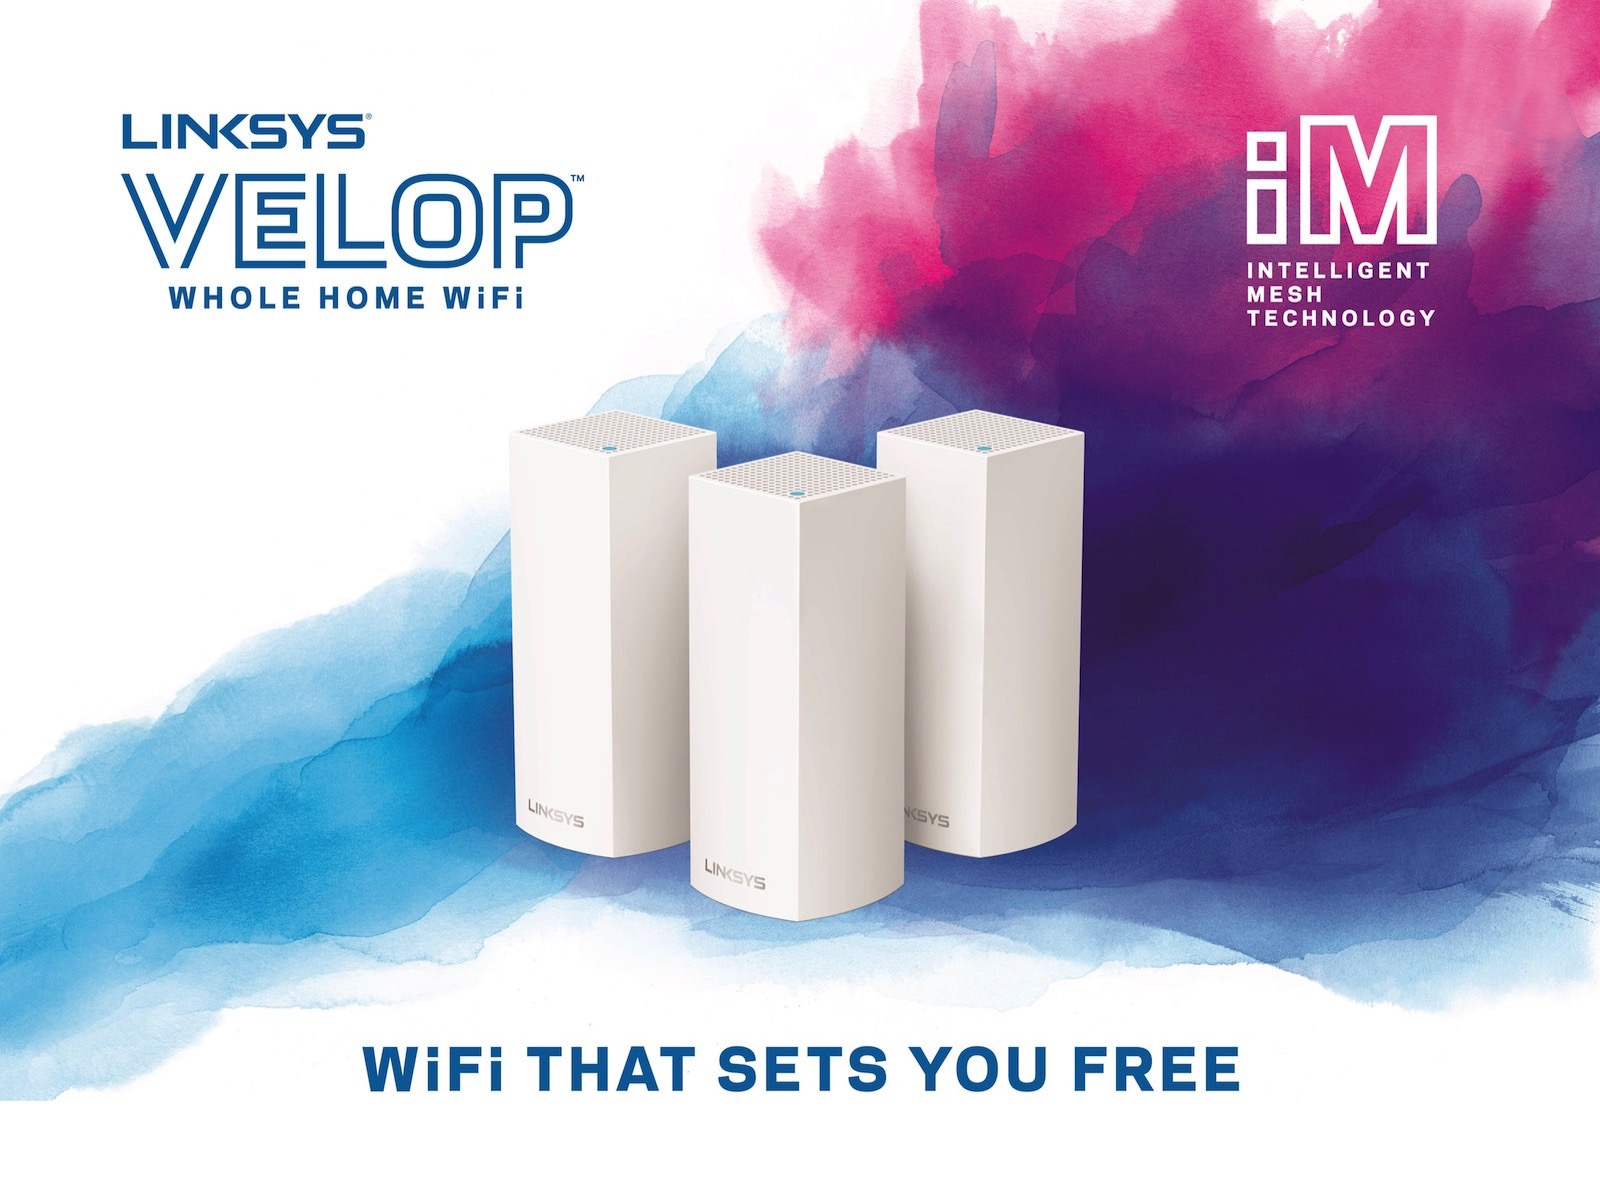 Linksys Velop WiFi Router 1